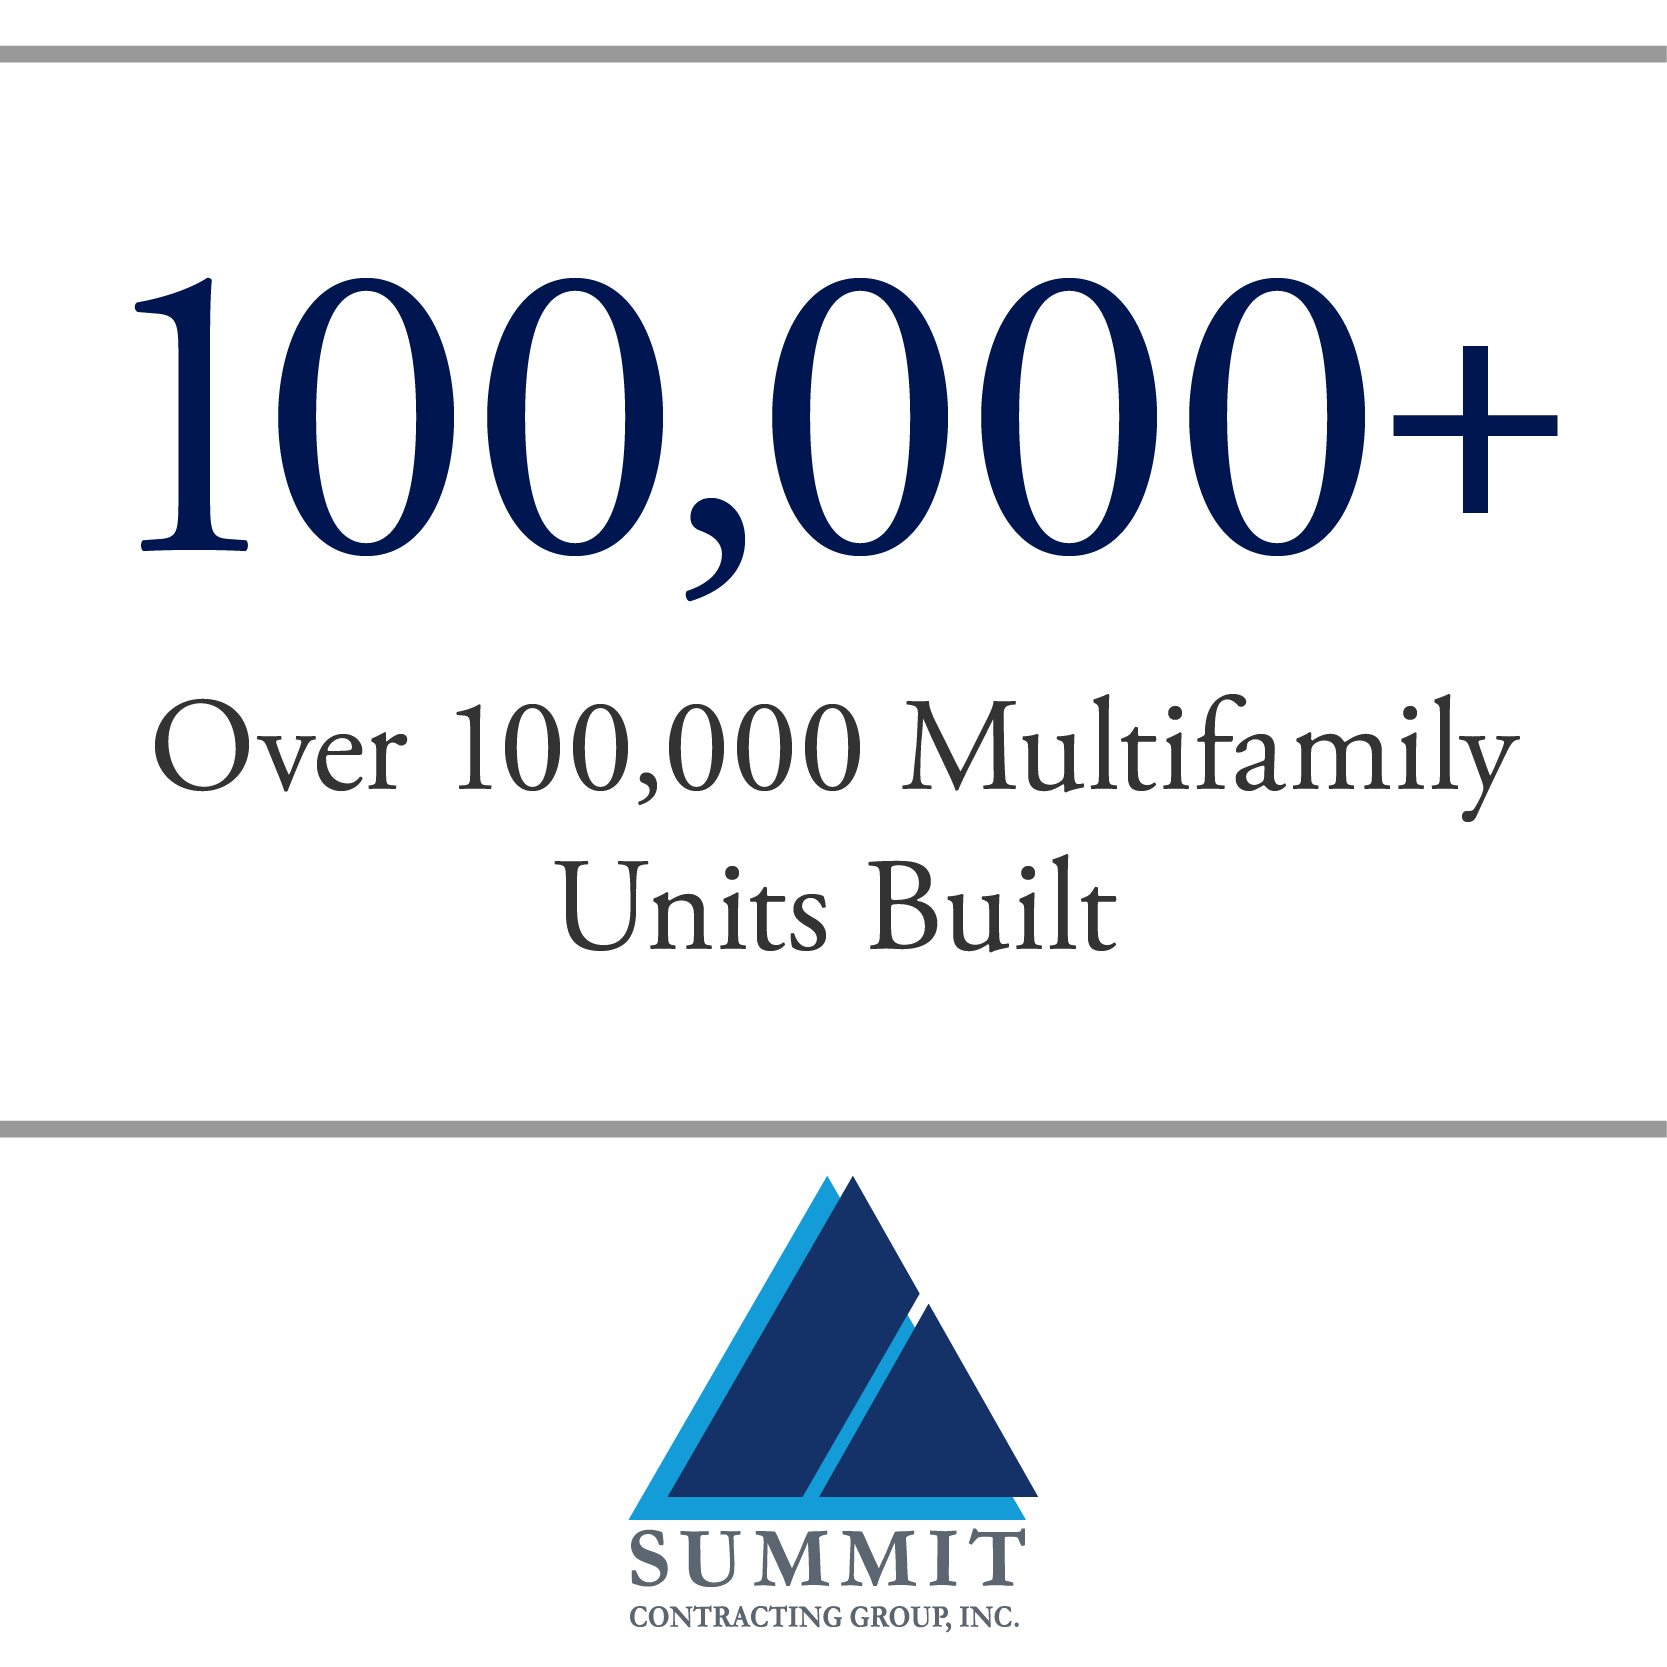 Over 100,000 Multifamily Units Built